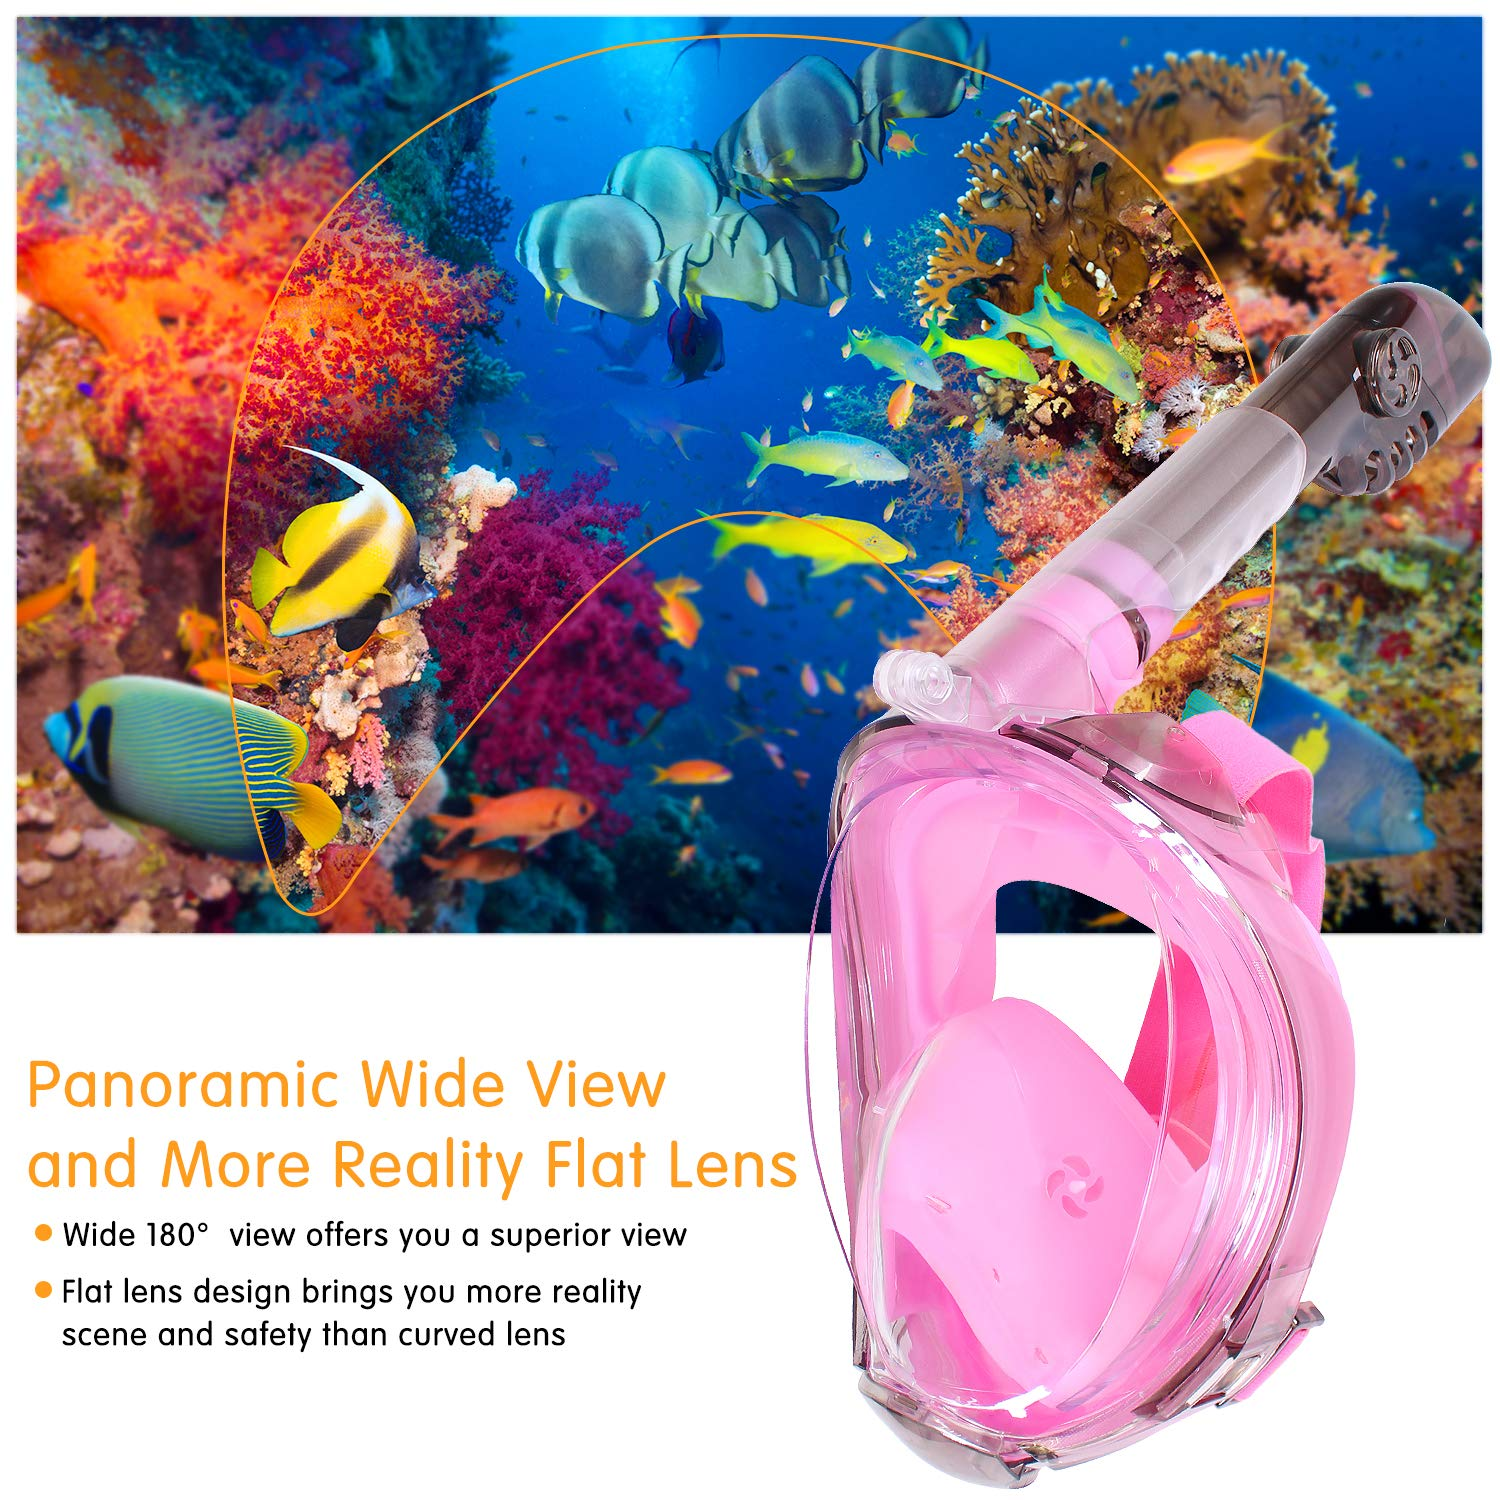 COSVII Snorkel Mask Full Face, Diving Mask with 180° Panoramic View & Detachable Camera Mount, Anti Fog & Anti Leak, Swimming Mask with Adjustable Head Straps for Adults (Pink, Large/Extra Large)